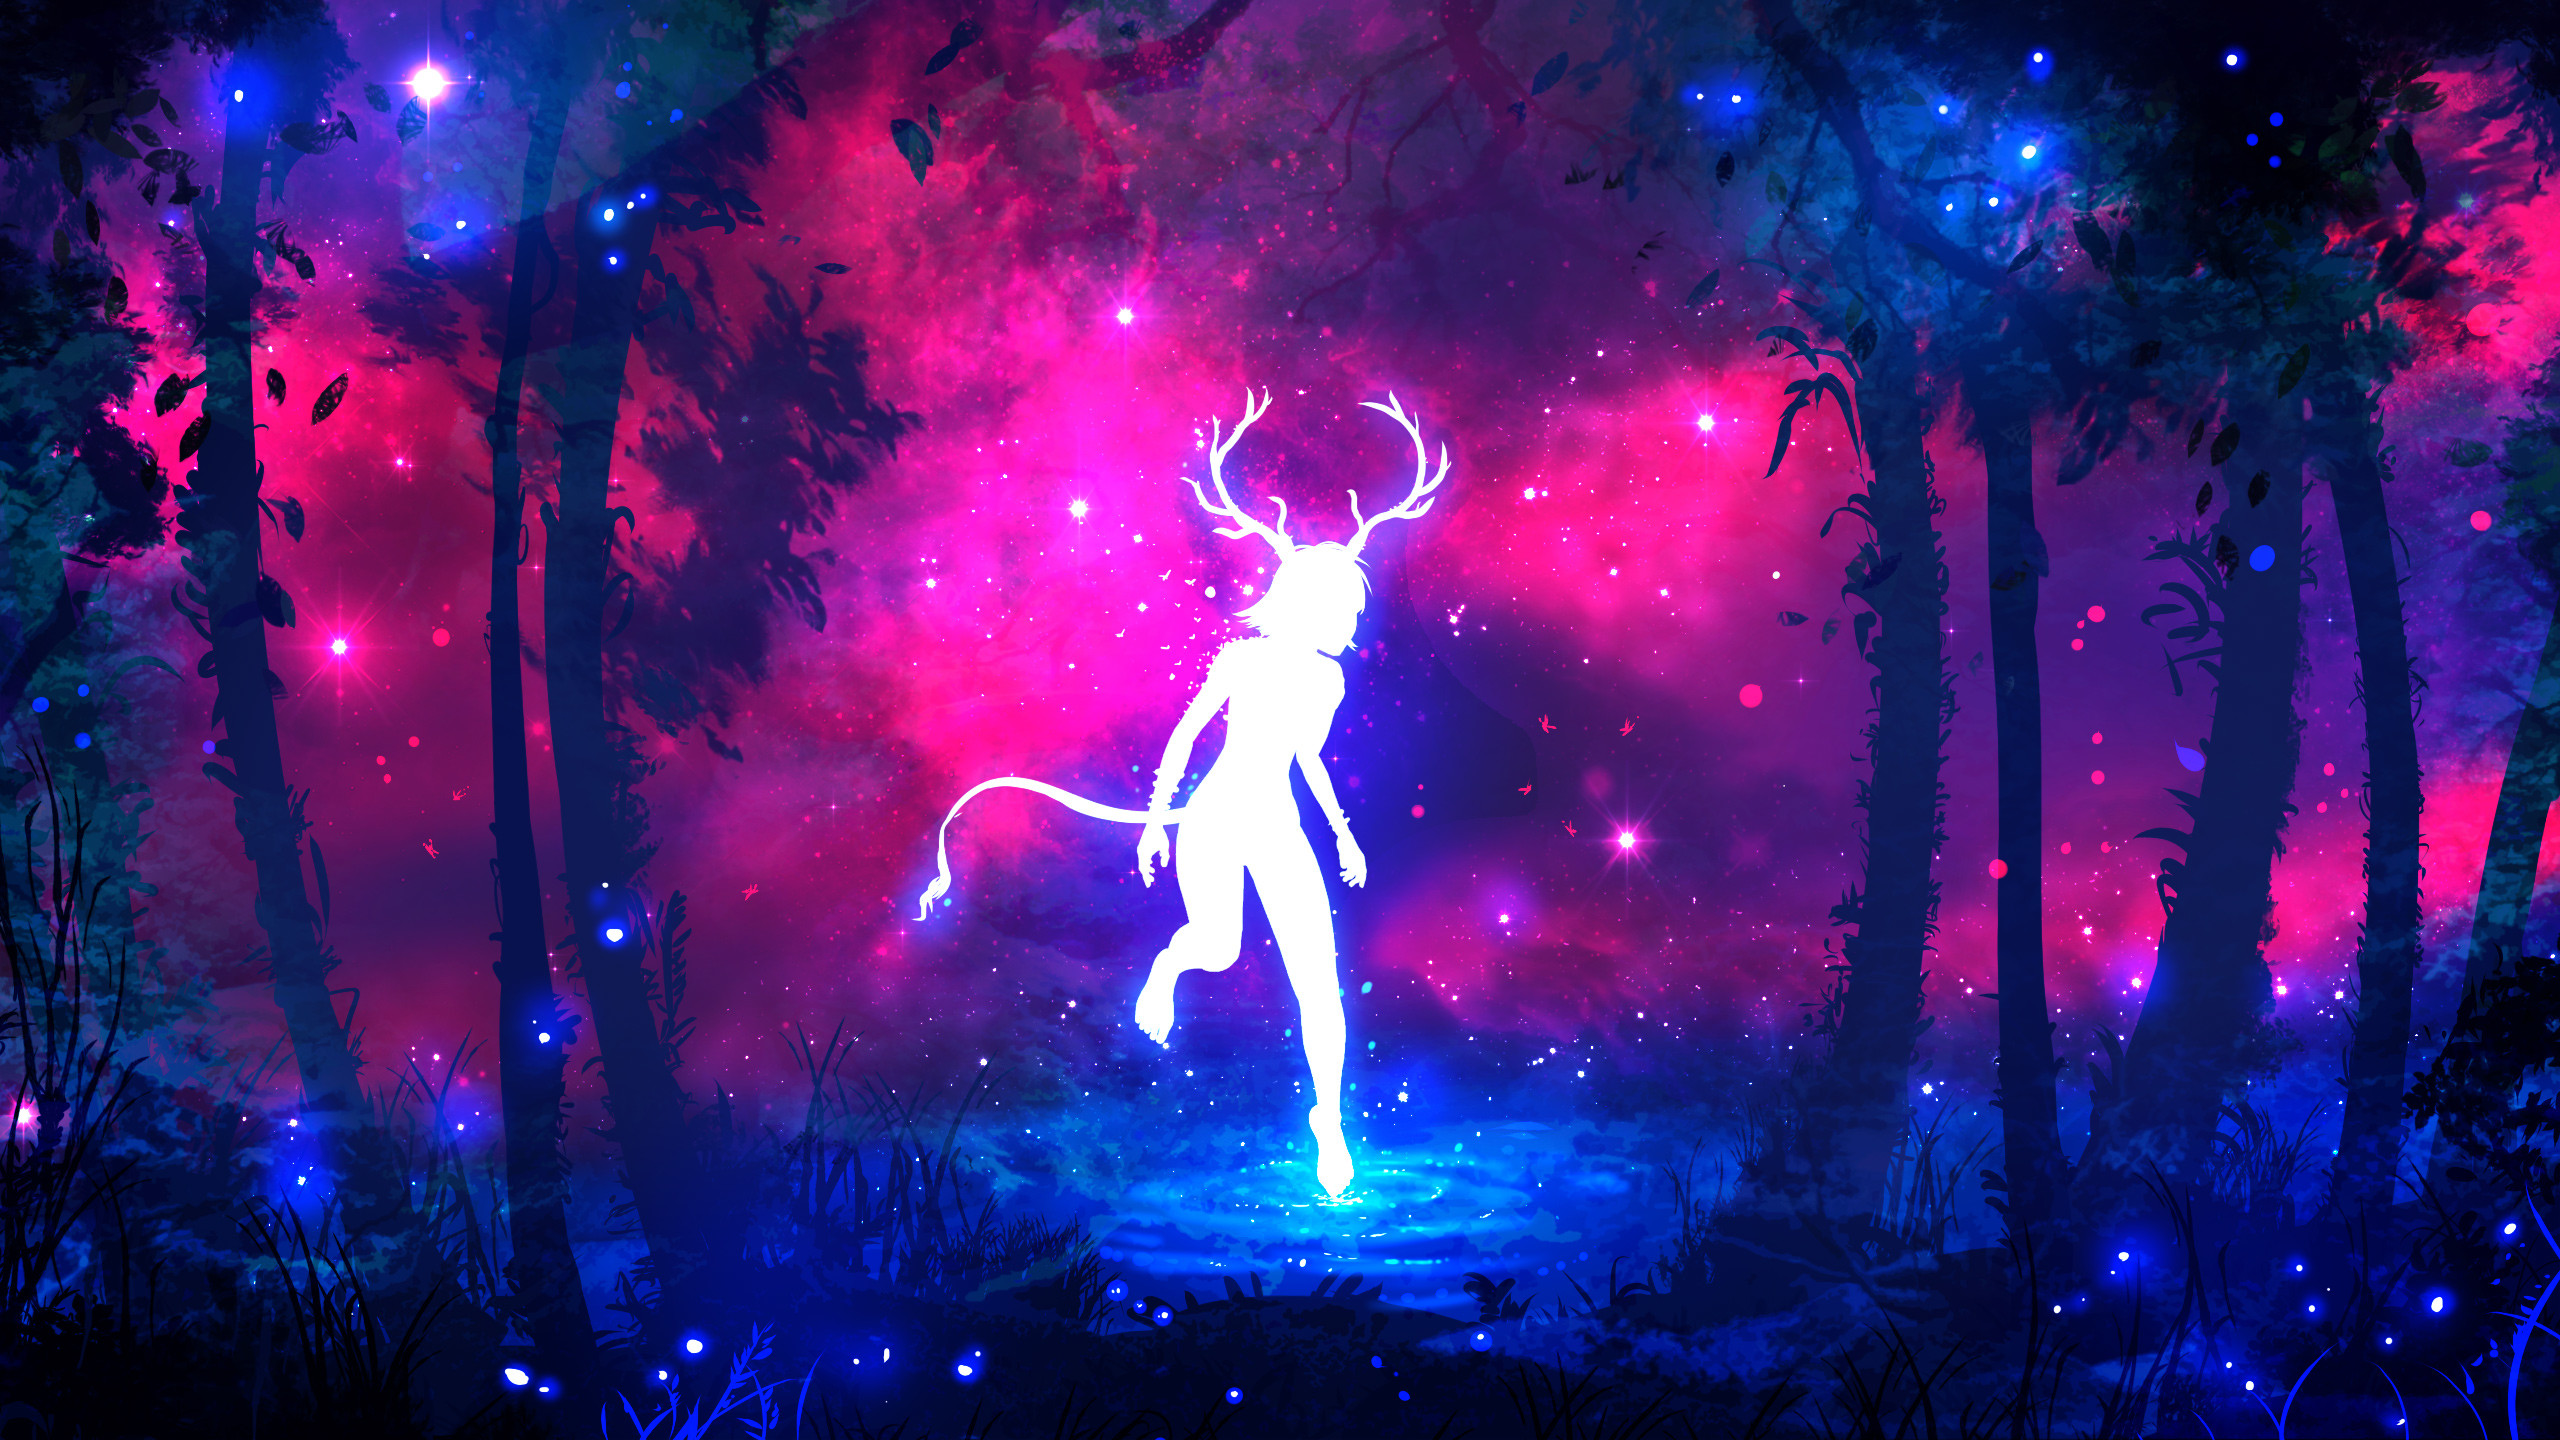 2560x1440 Jungle, Forest, Horns, Fantasy girl, Neon colors, HD